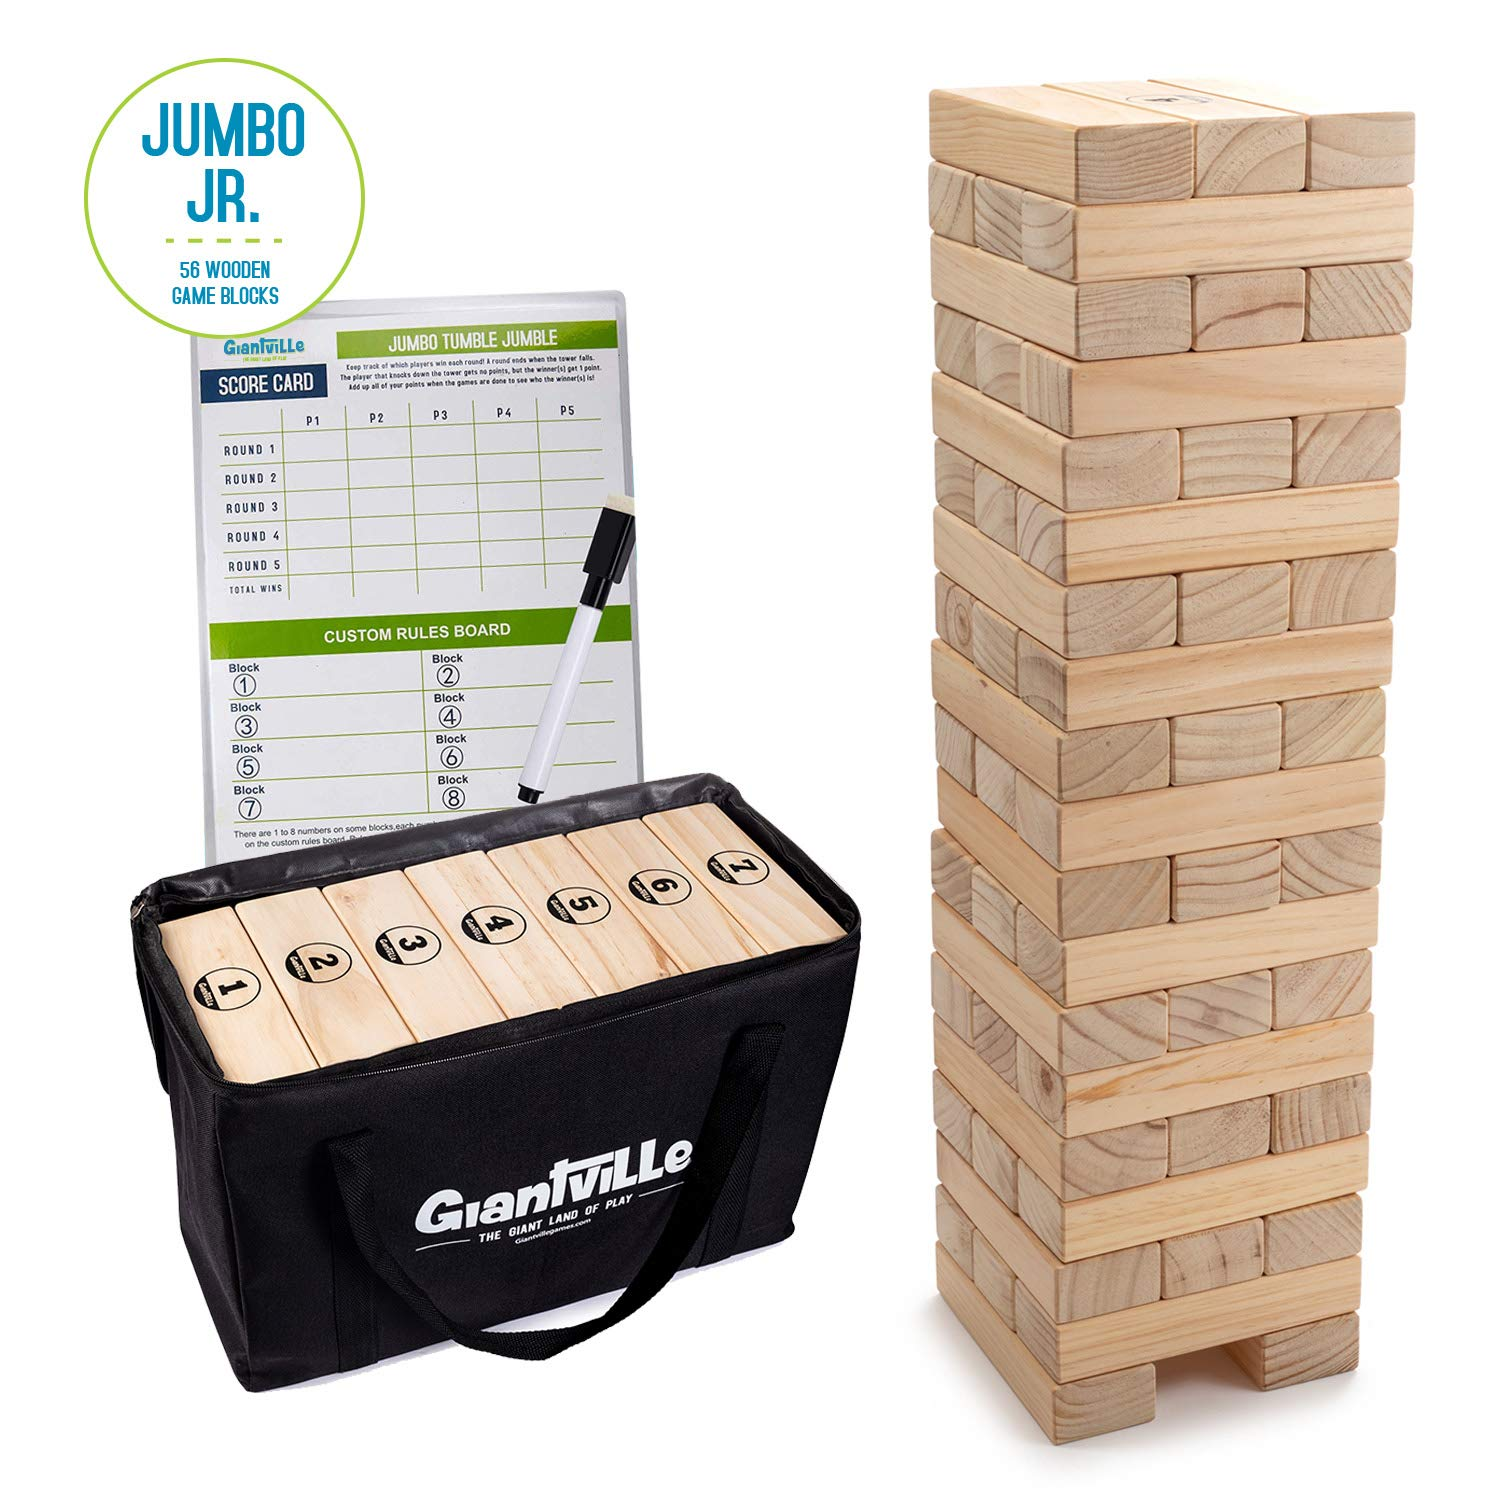 Giant Tumbling Timber Toy - Jumbo JR. Wooden Blocks Floor Game for Kids and Adults 56 Pieces Premium Pine Wood Carry Bag - Grows to Over 4-feet While Playing Life Size